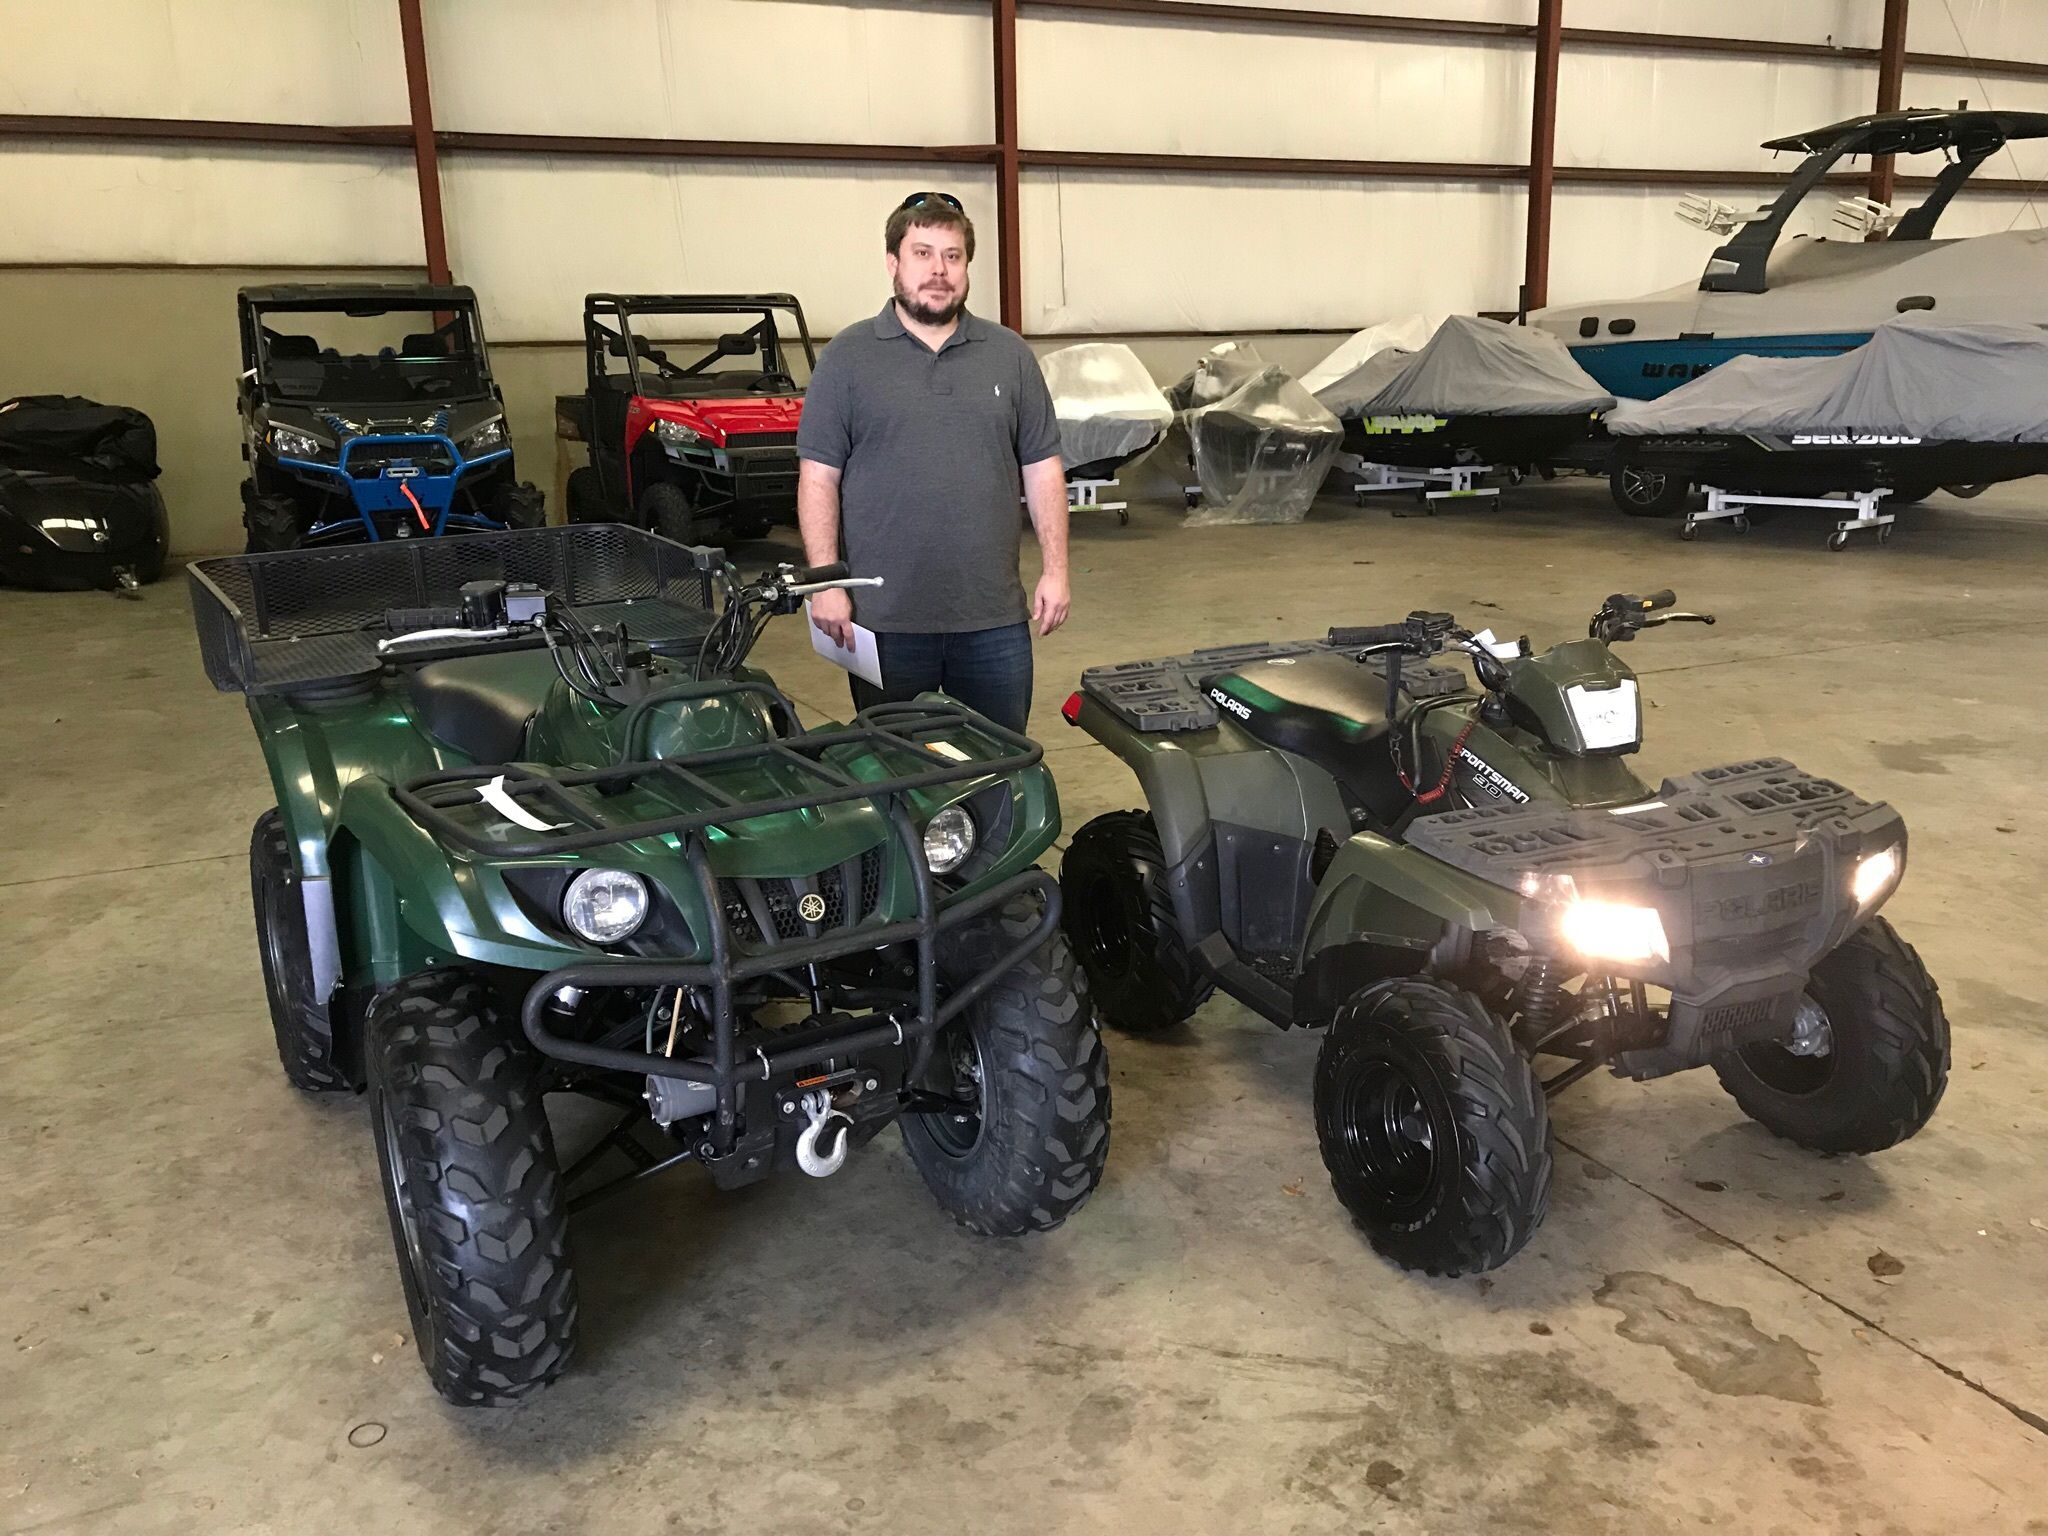 medium resolution of congratulations to arthur walker from kiln ms for purchasing a 2006 yamaha bruin 250 and a 2013 polaris sportsman 90 at hattiesburg cycles